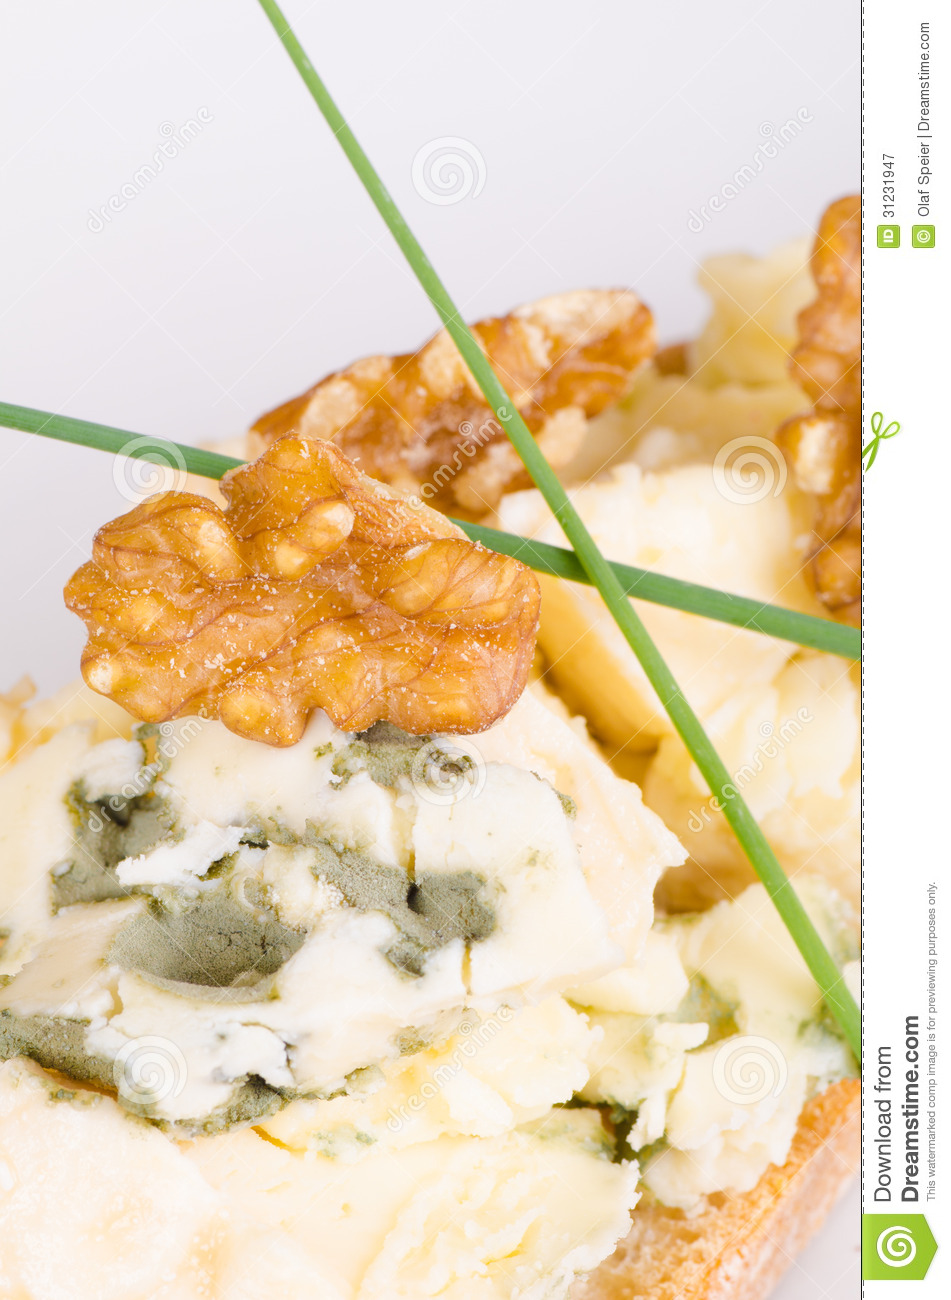 Blue cheese canape royalty free stock photography image for Blue cheese canape